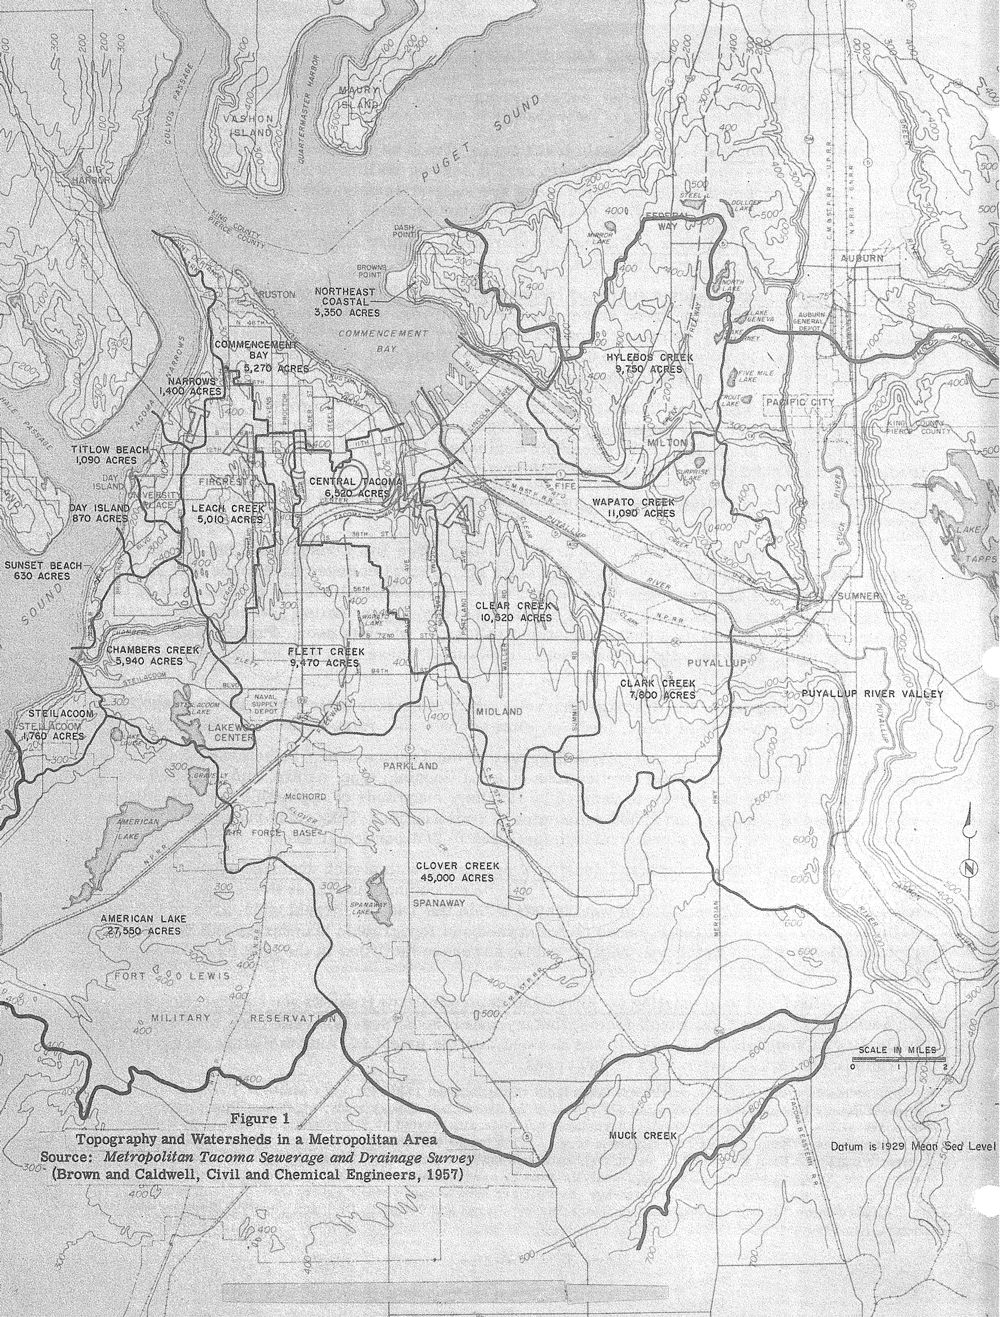 Figure 1.  Topography and Watersheds in a Metropolitan Area. Source: Metropolitan Tacoma Sewerage and Drainage Survey (Brown and Caldwell, Civil and Chemical Engineers, 1957).